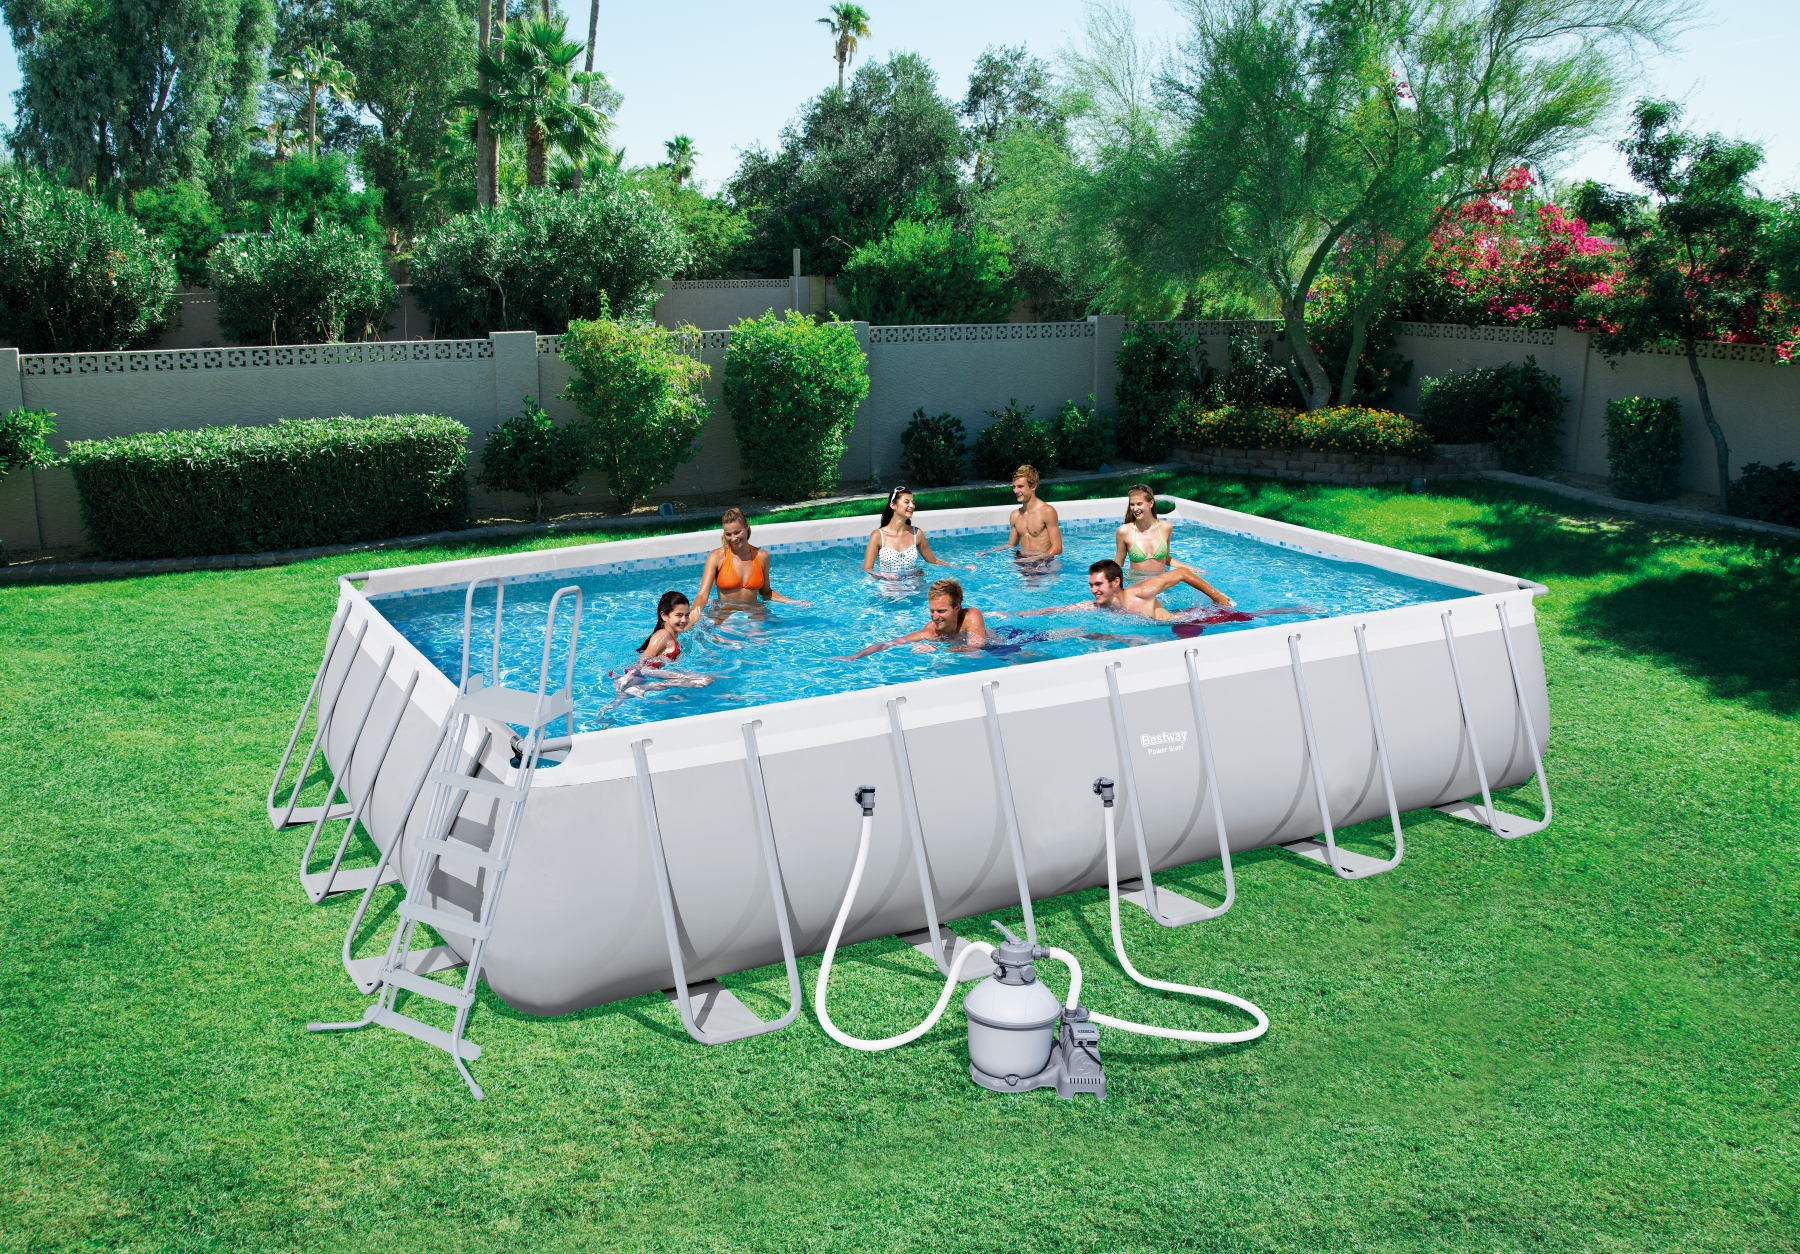 Piscina fuori terra rettangolare power steel bestway 56471 for Addobbi piscina